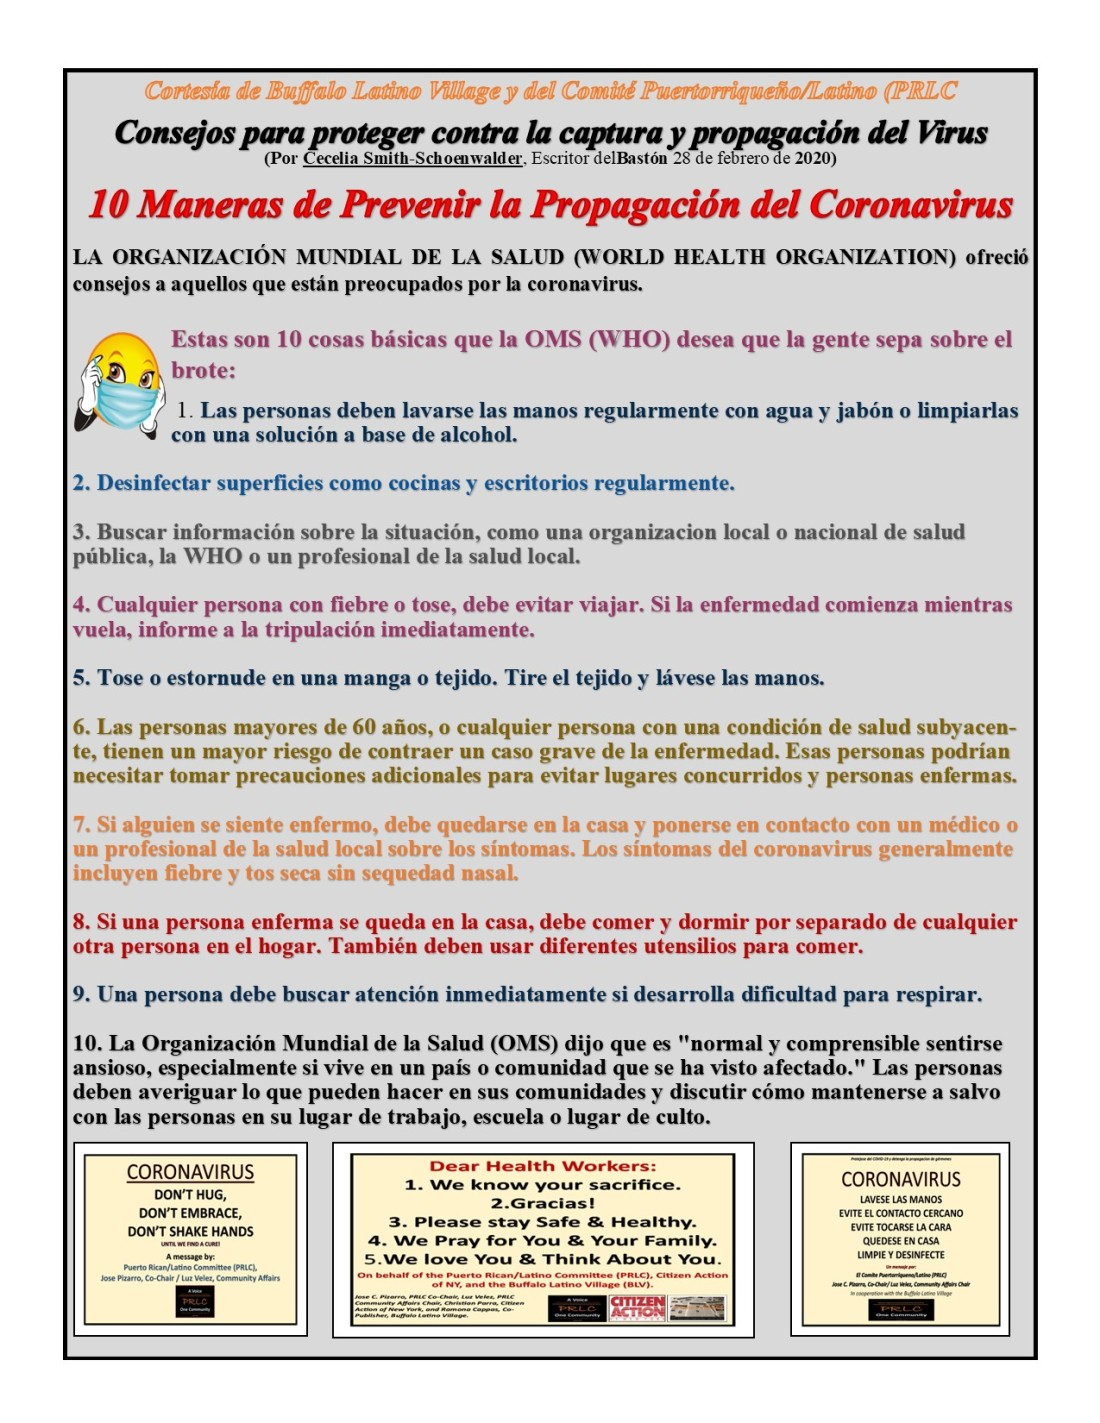 10 ways to stay safe from the Coronavirus SPANISH.pub